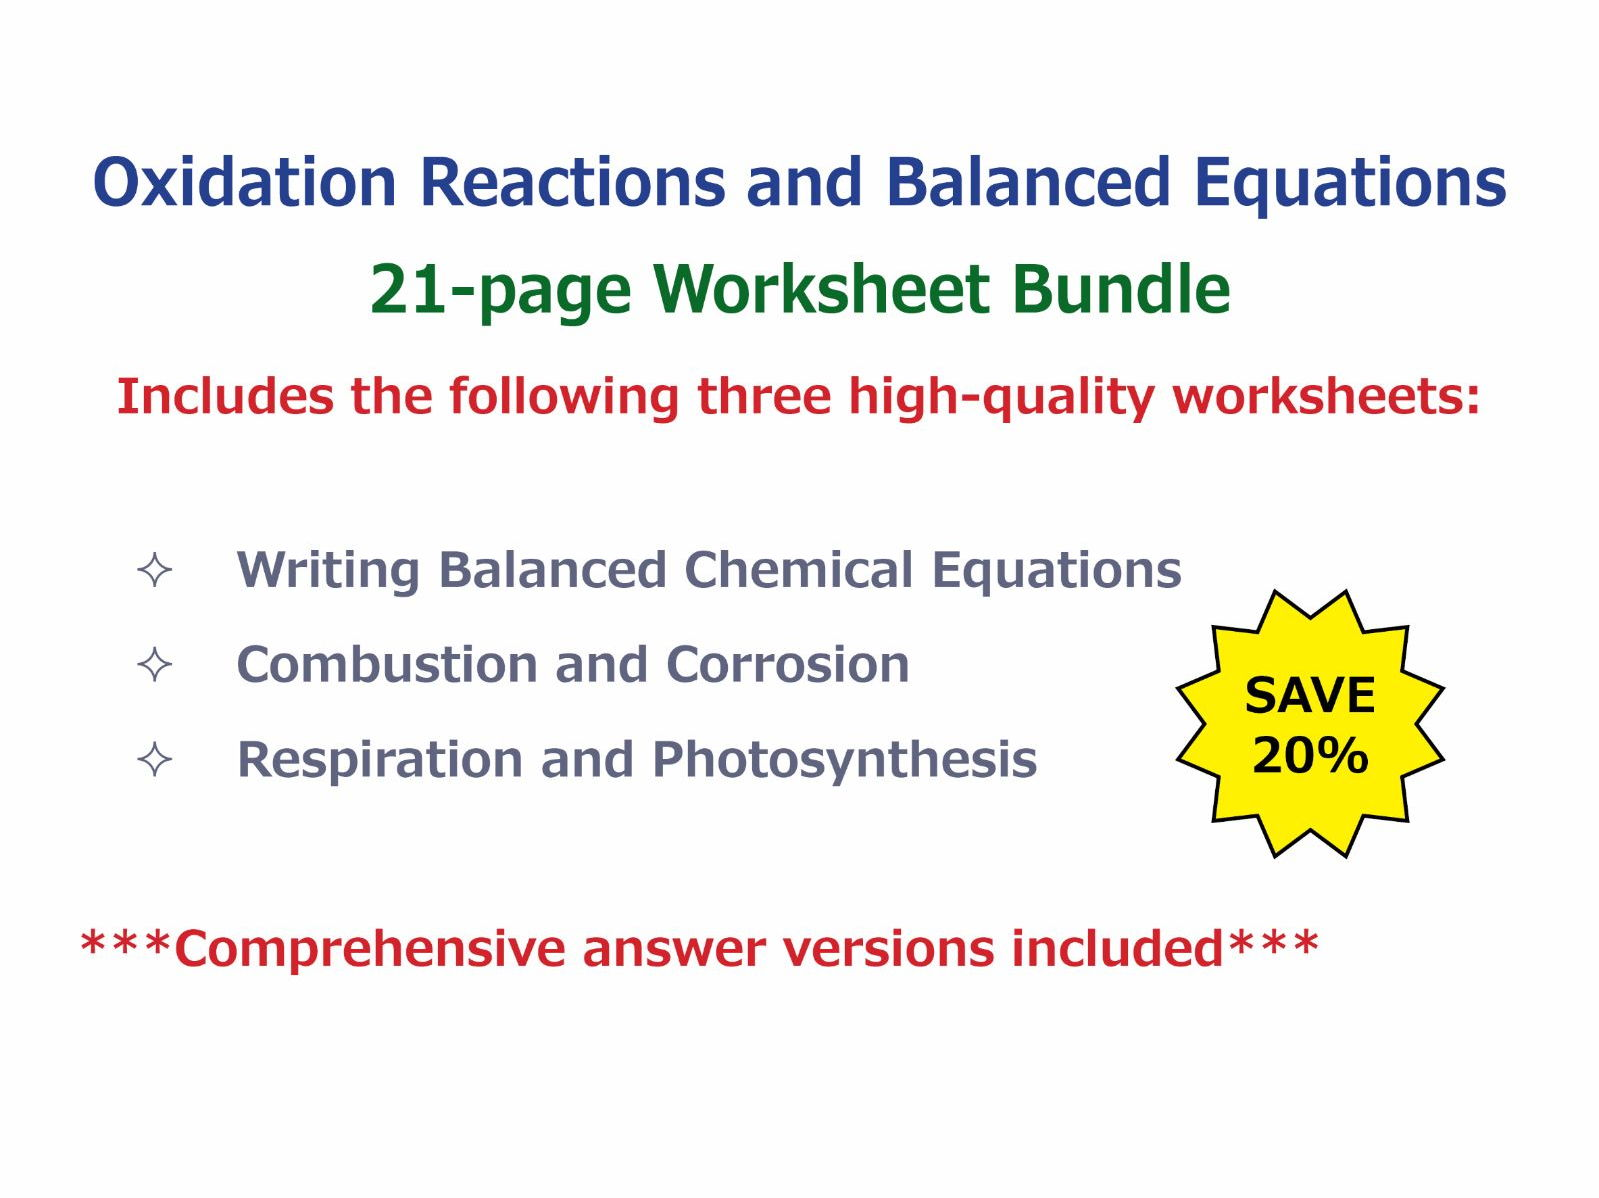 Oxidation reactions and balanced equations worksheet bundle by oxidation reactions and balanced equations worksheet bundle by goodscienceworksheets teaching resources tes robcynllc Gallery